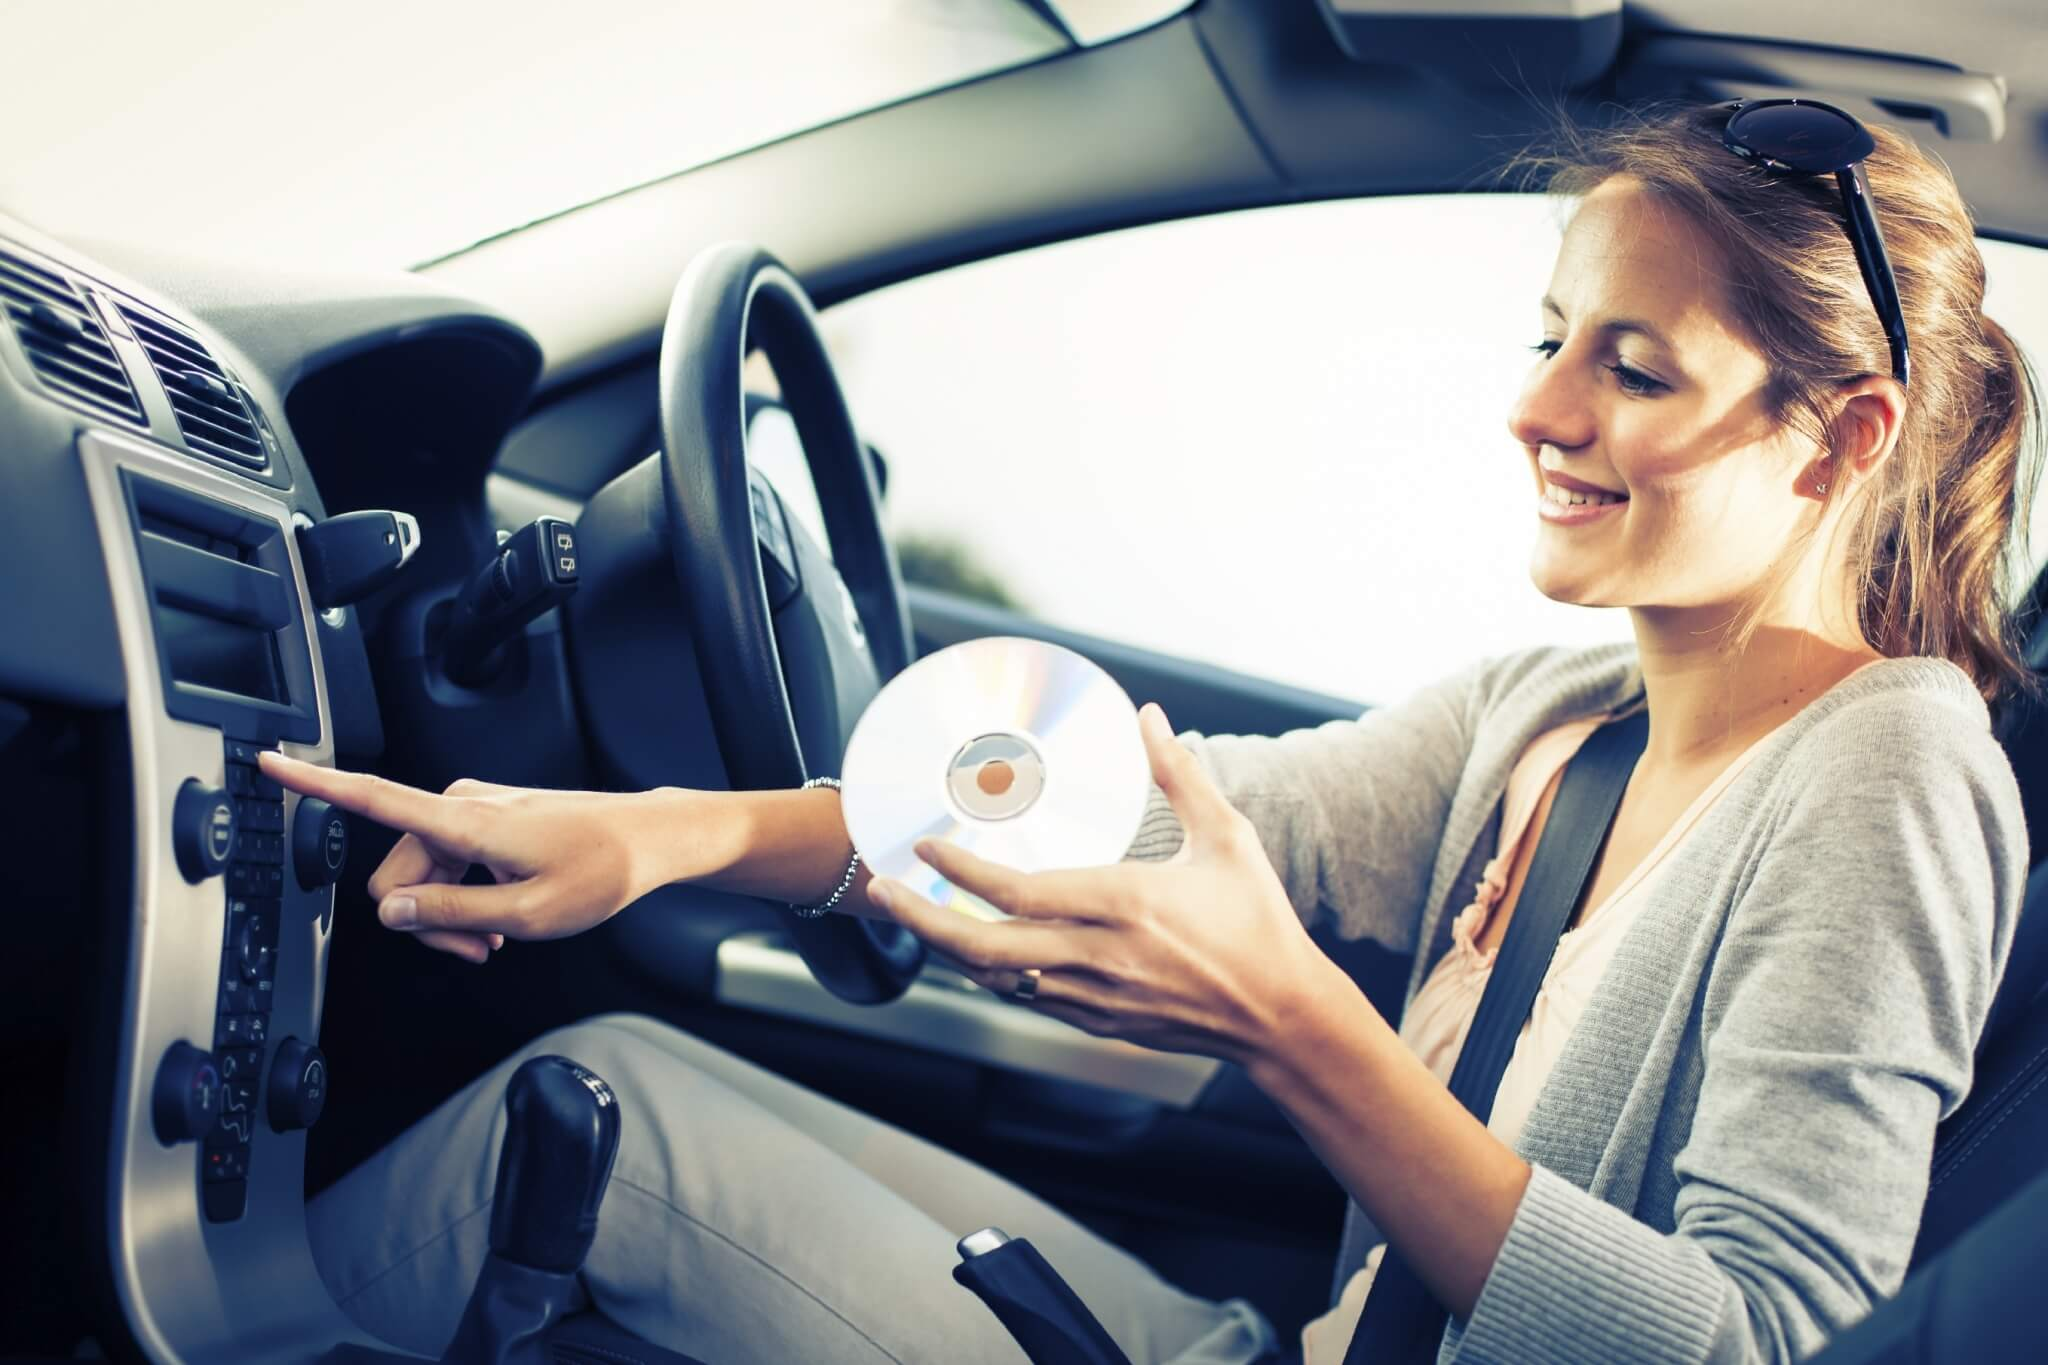 Young-female-driver-playing-music-in-the-car-000070272949_Large.jpg.jpeg